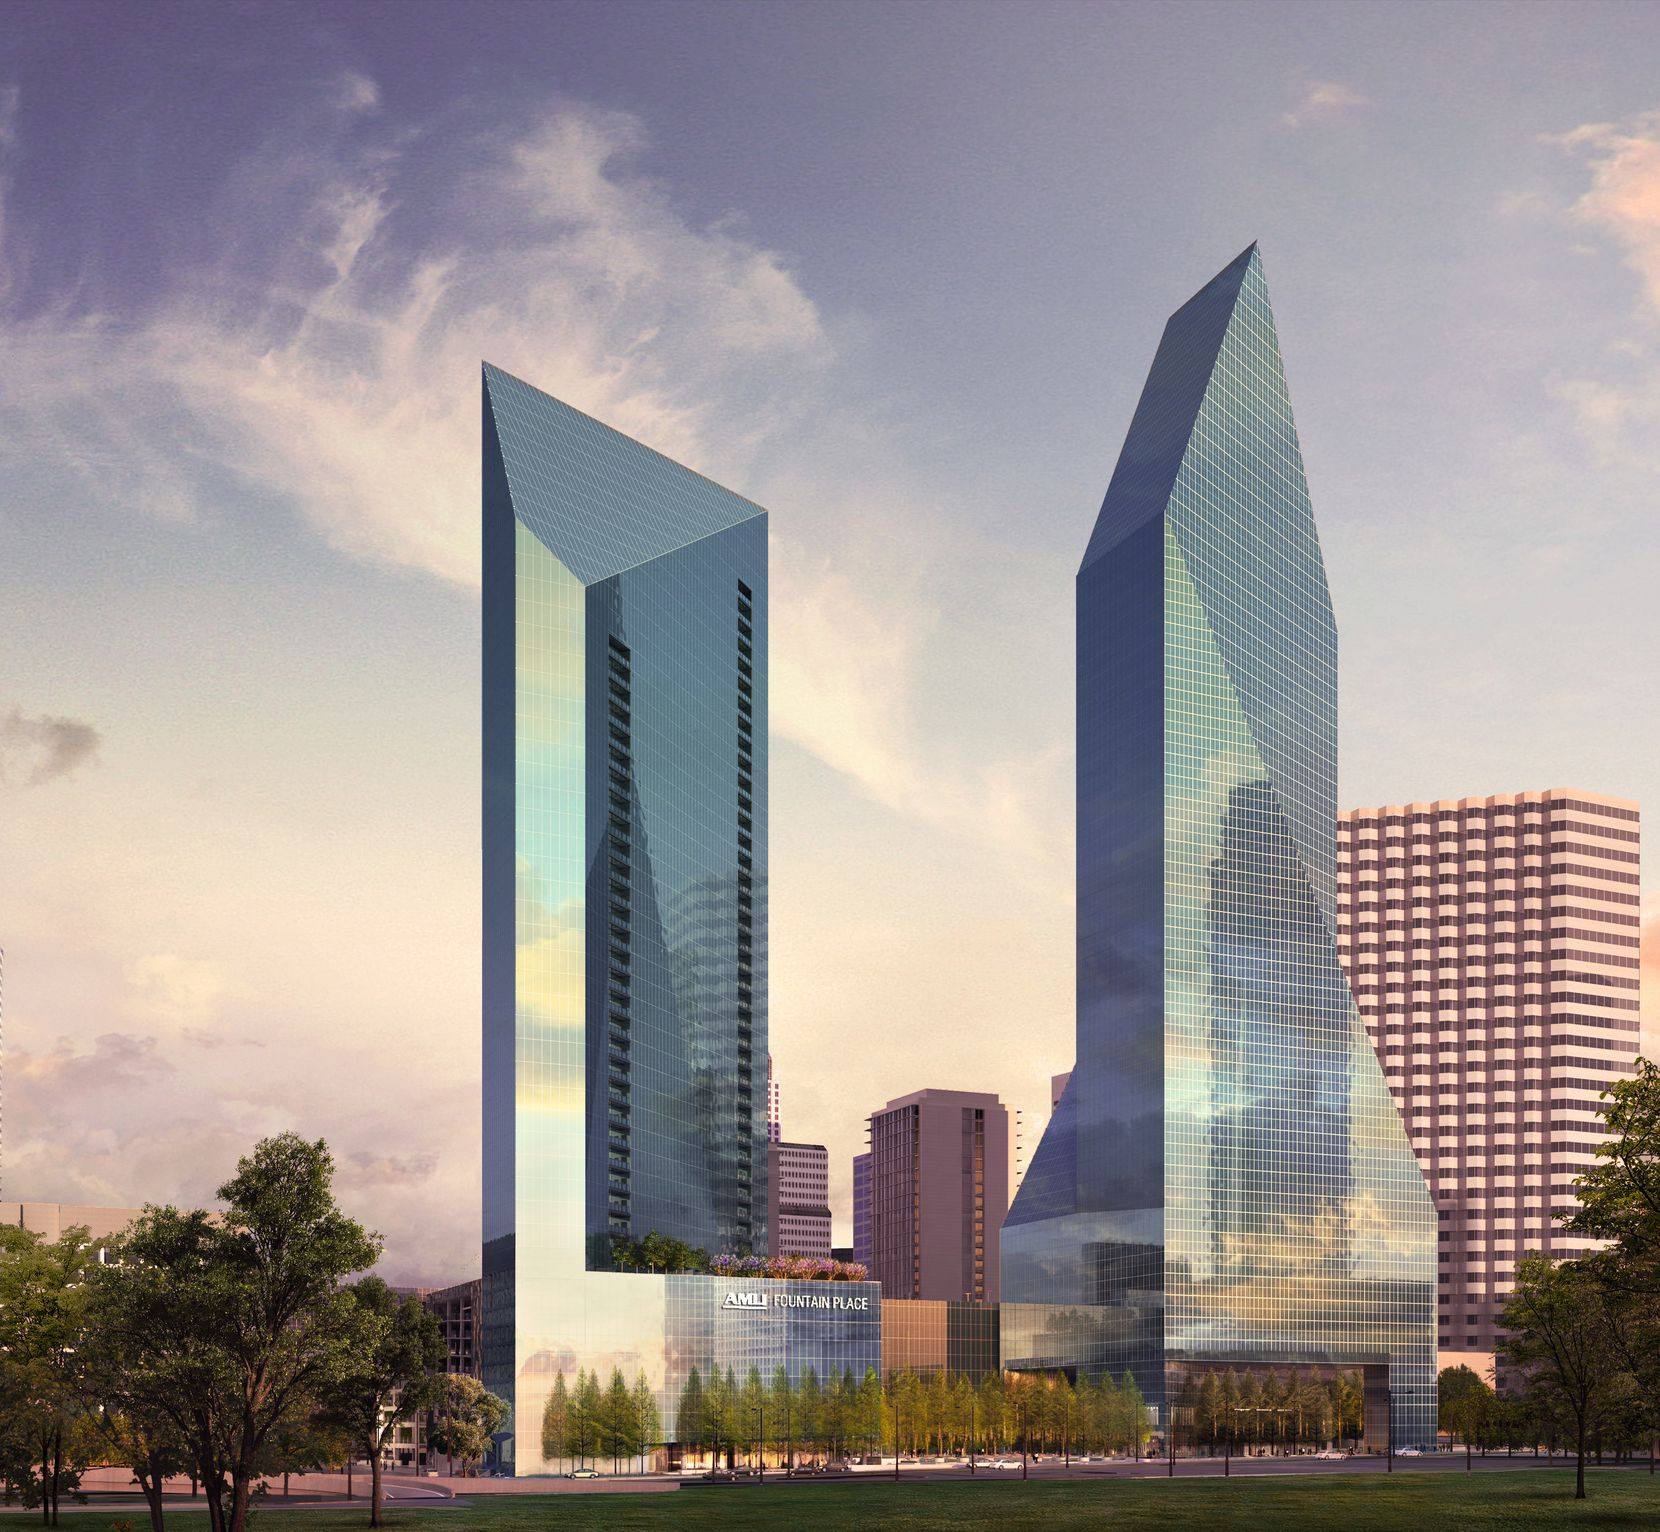 Amli Residential's new downtown tower will be the tallest built in Dallas in decades.